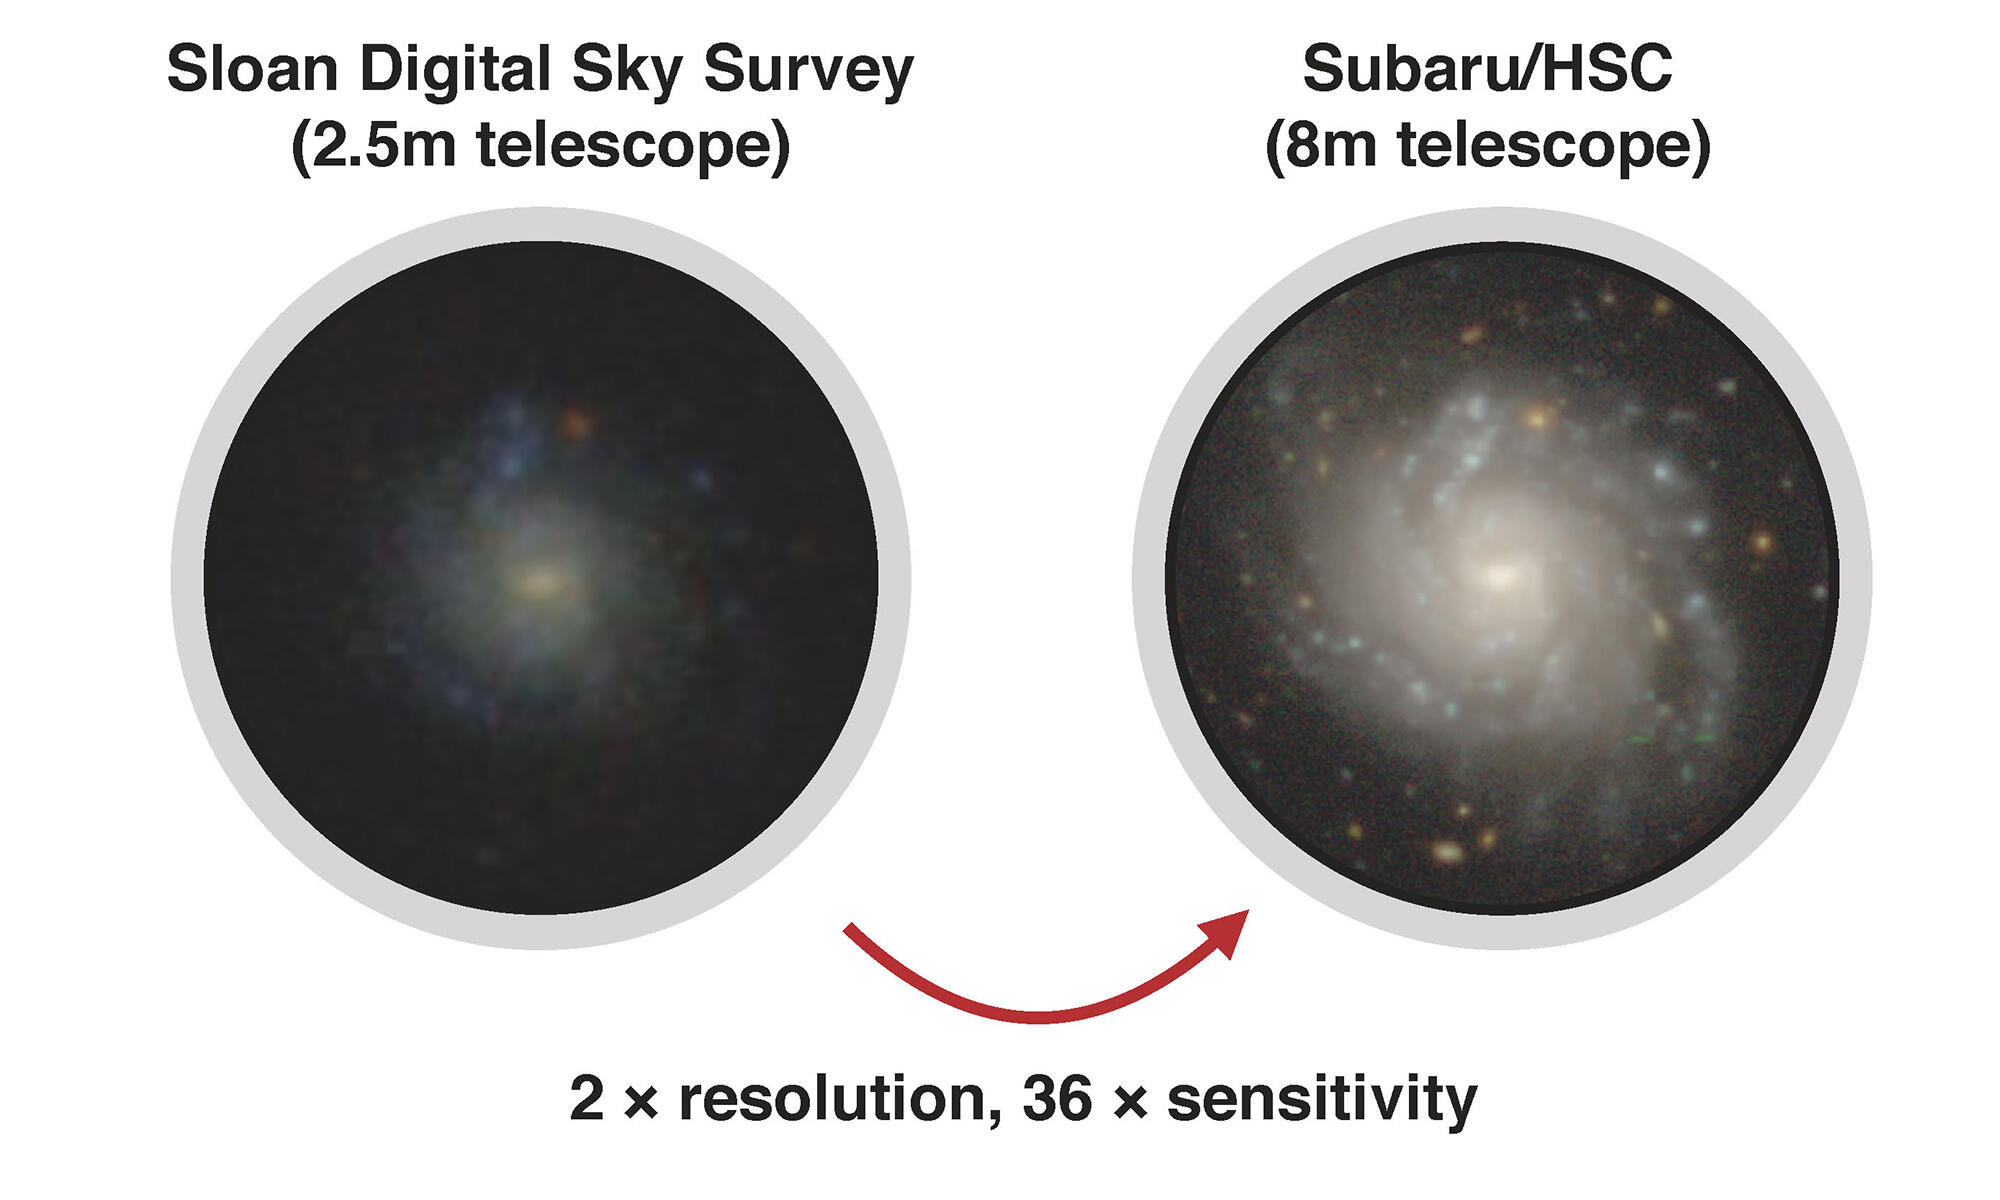 Subaru Galaxy Zoo Project with Artificial Intelligence Figure4